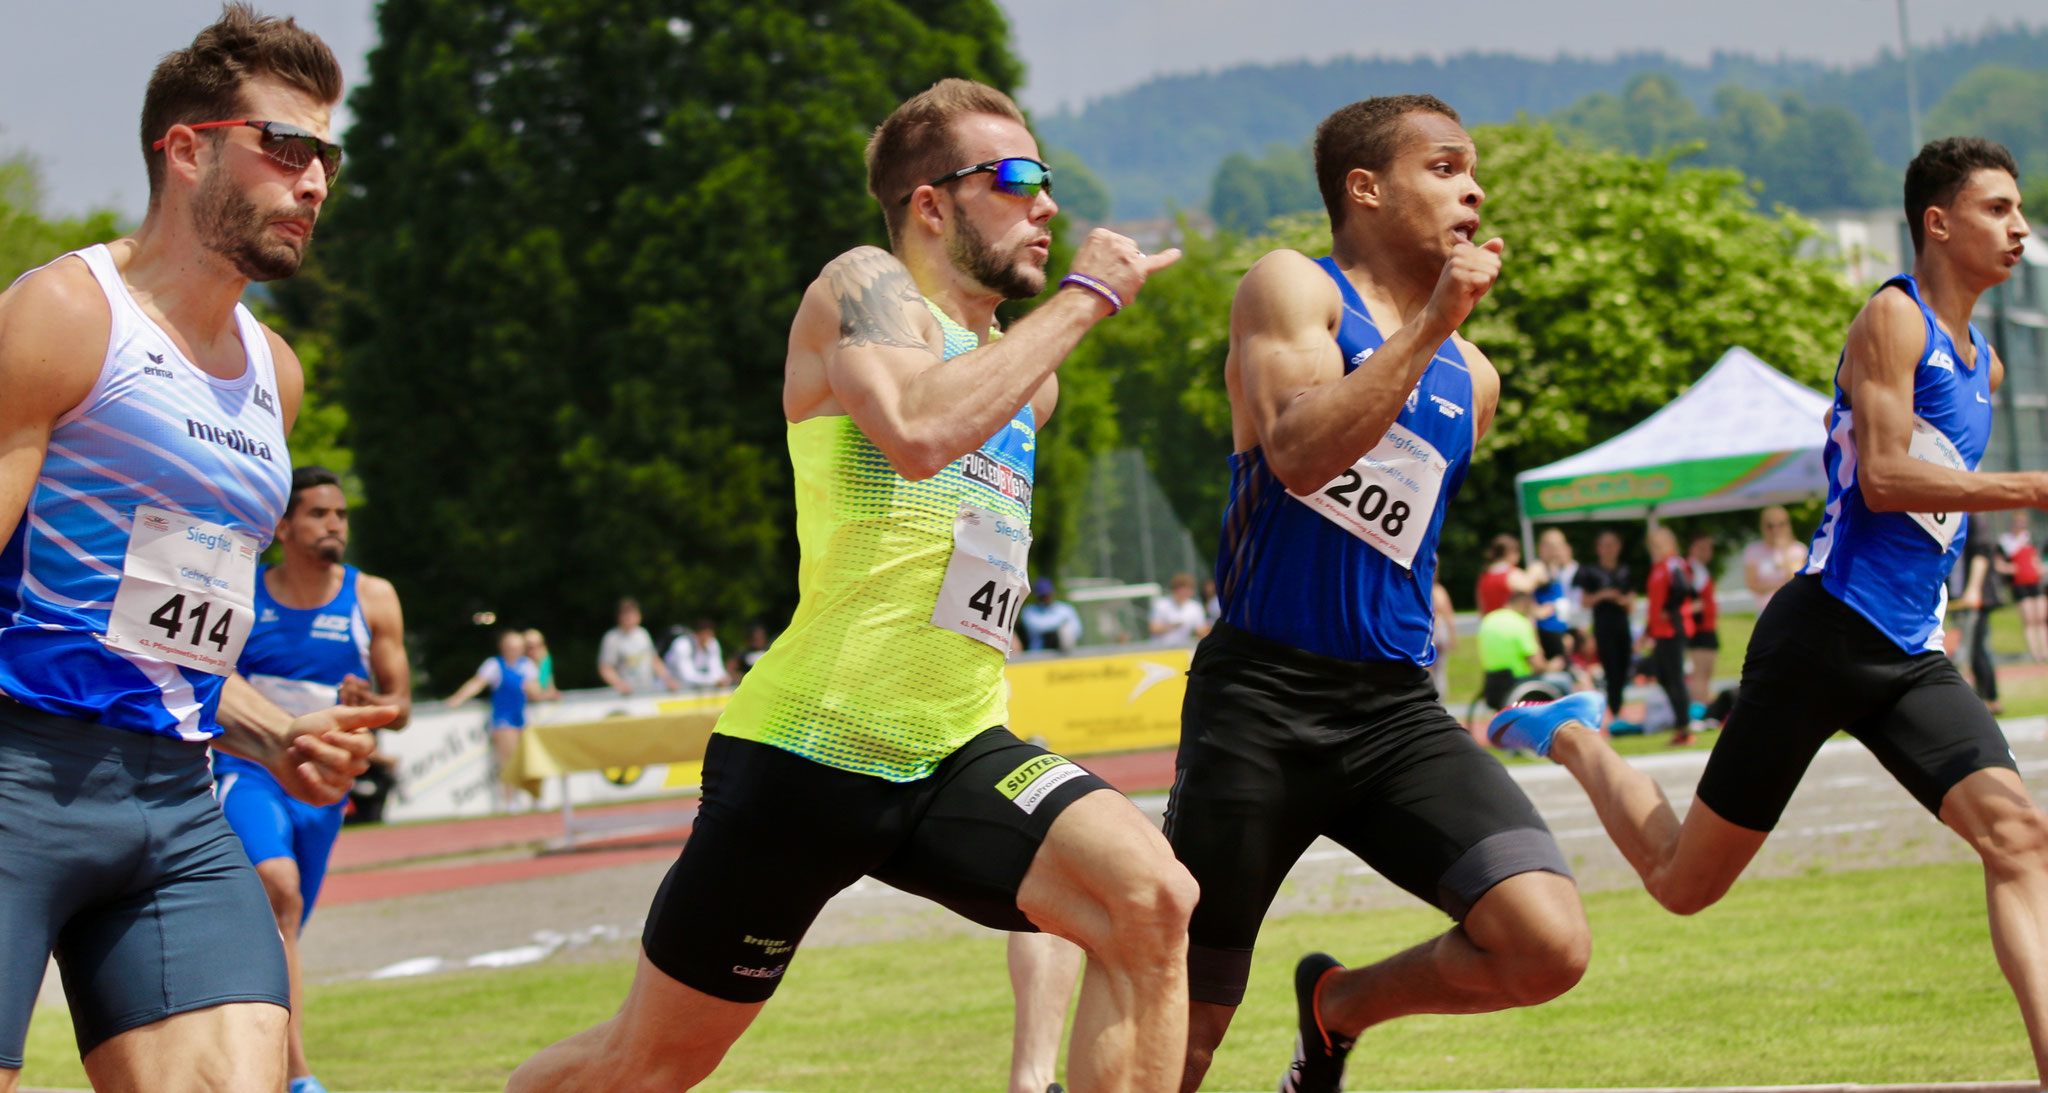 Pfingstmeeting Zofingen, 200m